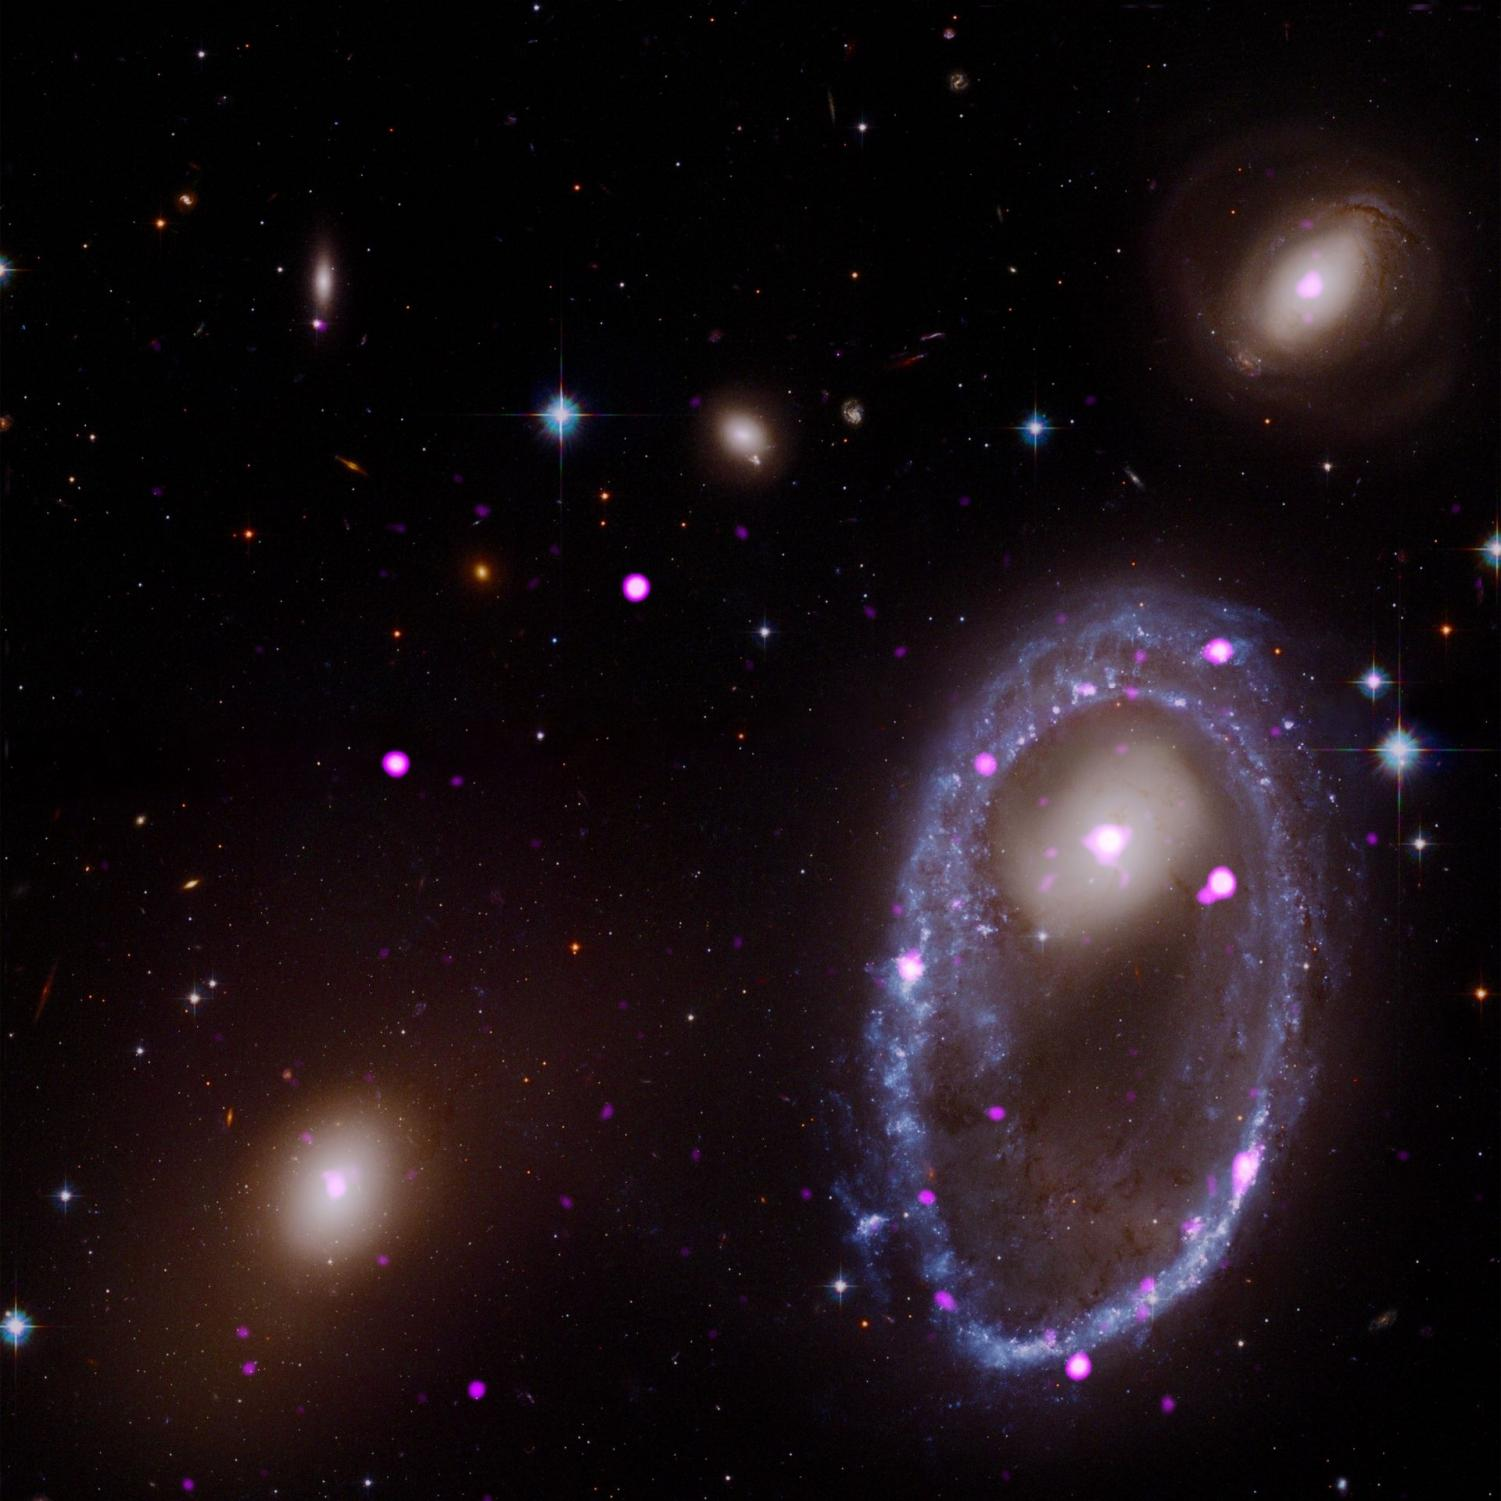 Image captured the X-rays by Hubble of the ring galaxy AM 0644 which is located in the lower right.